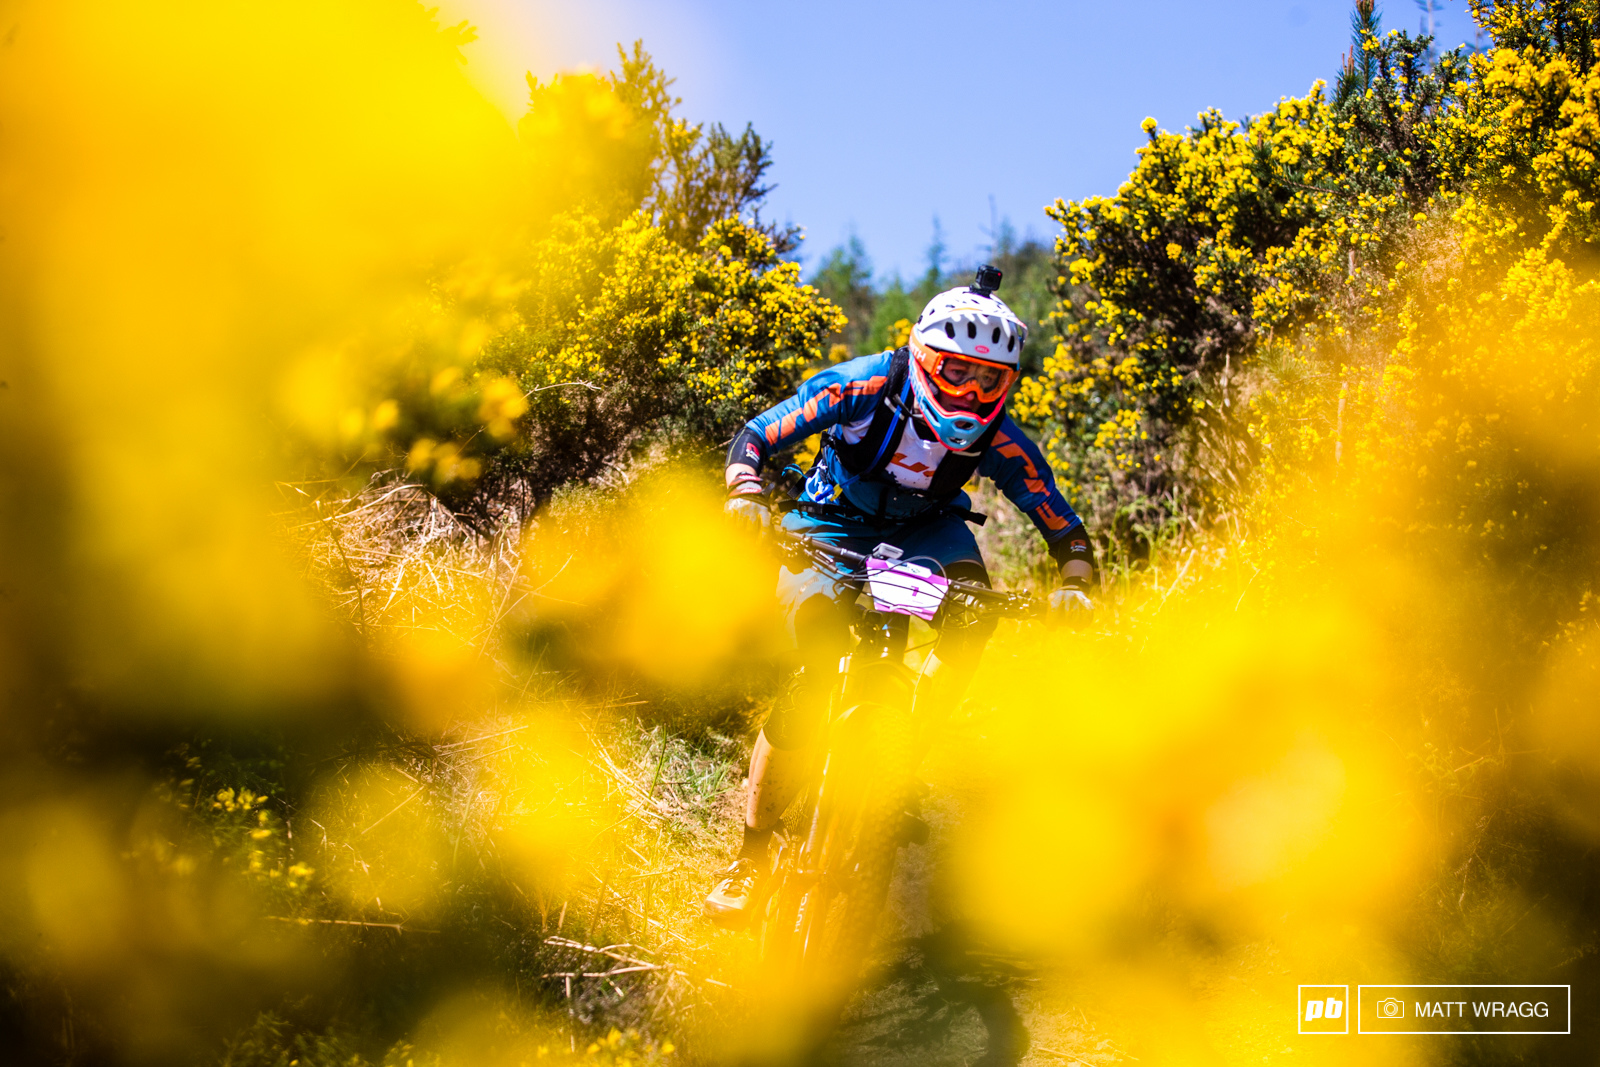 After a pretty brutal crash this winter that left her with two broken wrists Meg Bichard made her return to the EWS this weekend with a steady 10th.